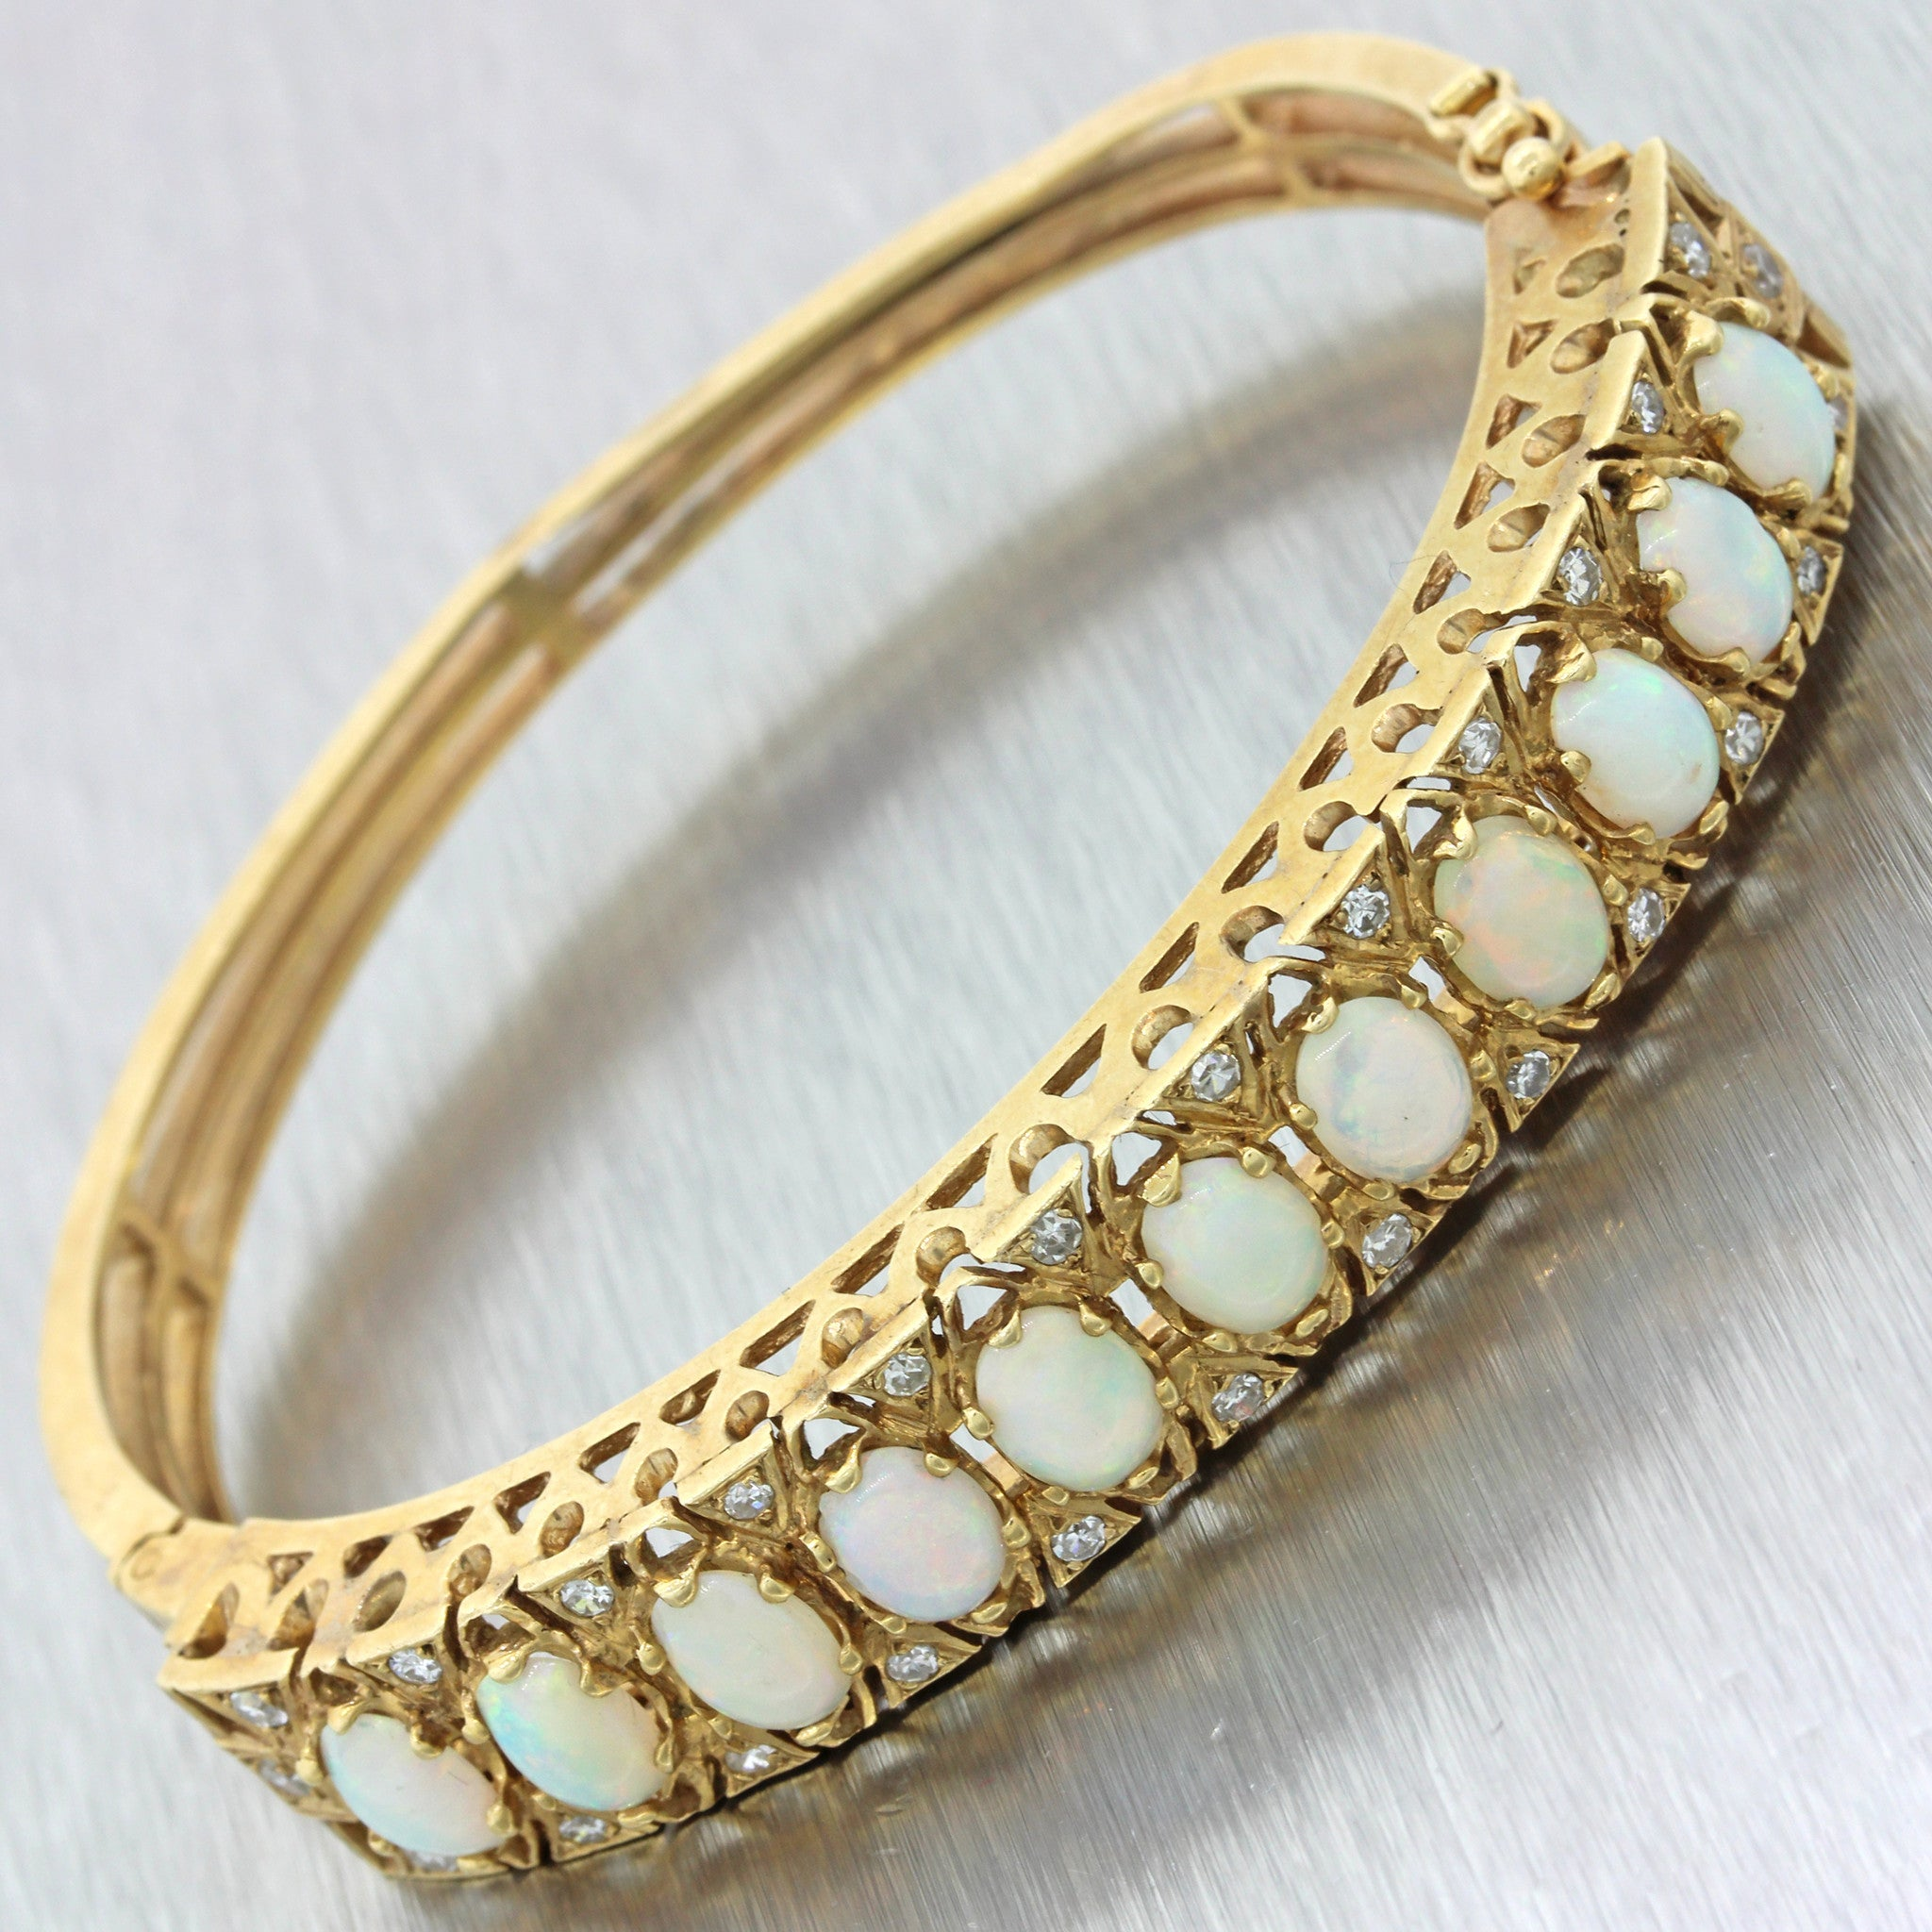 3831d4646611 Vintage Estate 14k Solid Yellow Gold Diamond Opal Filigree Bangle Brac –  Collectors1946.com